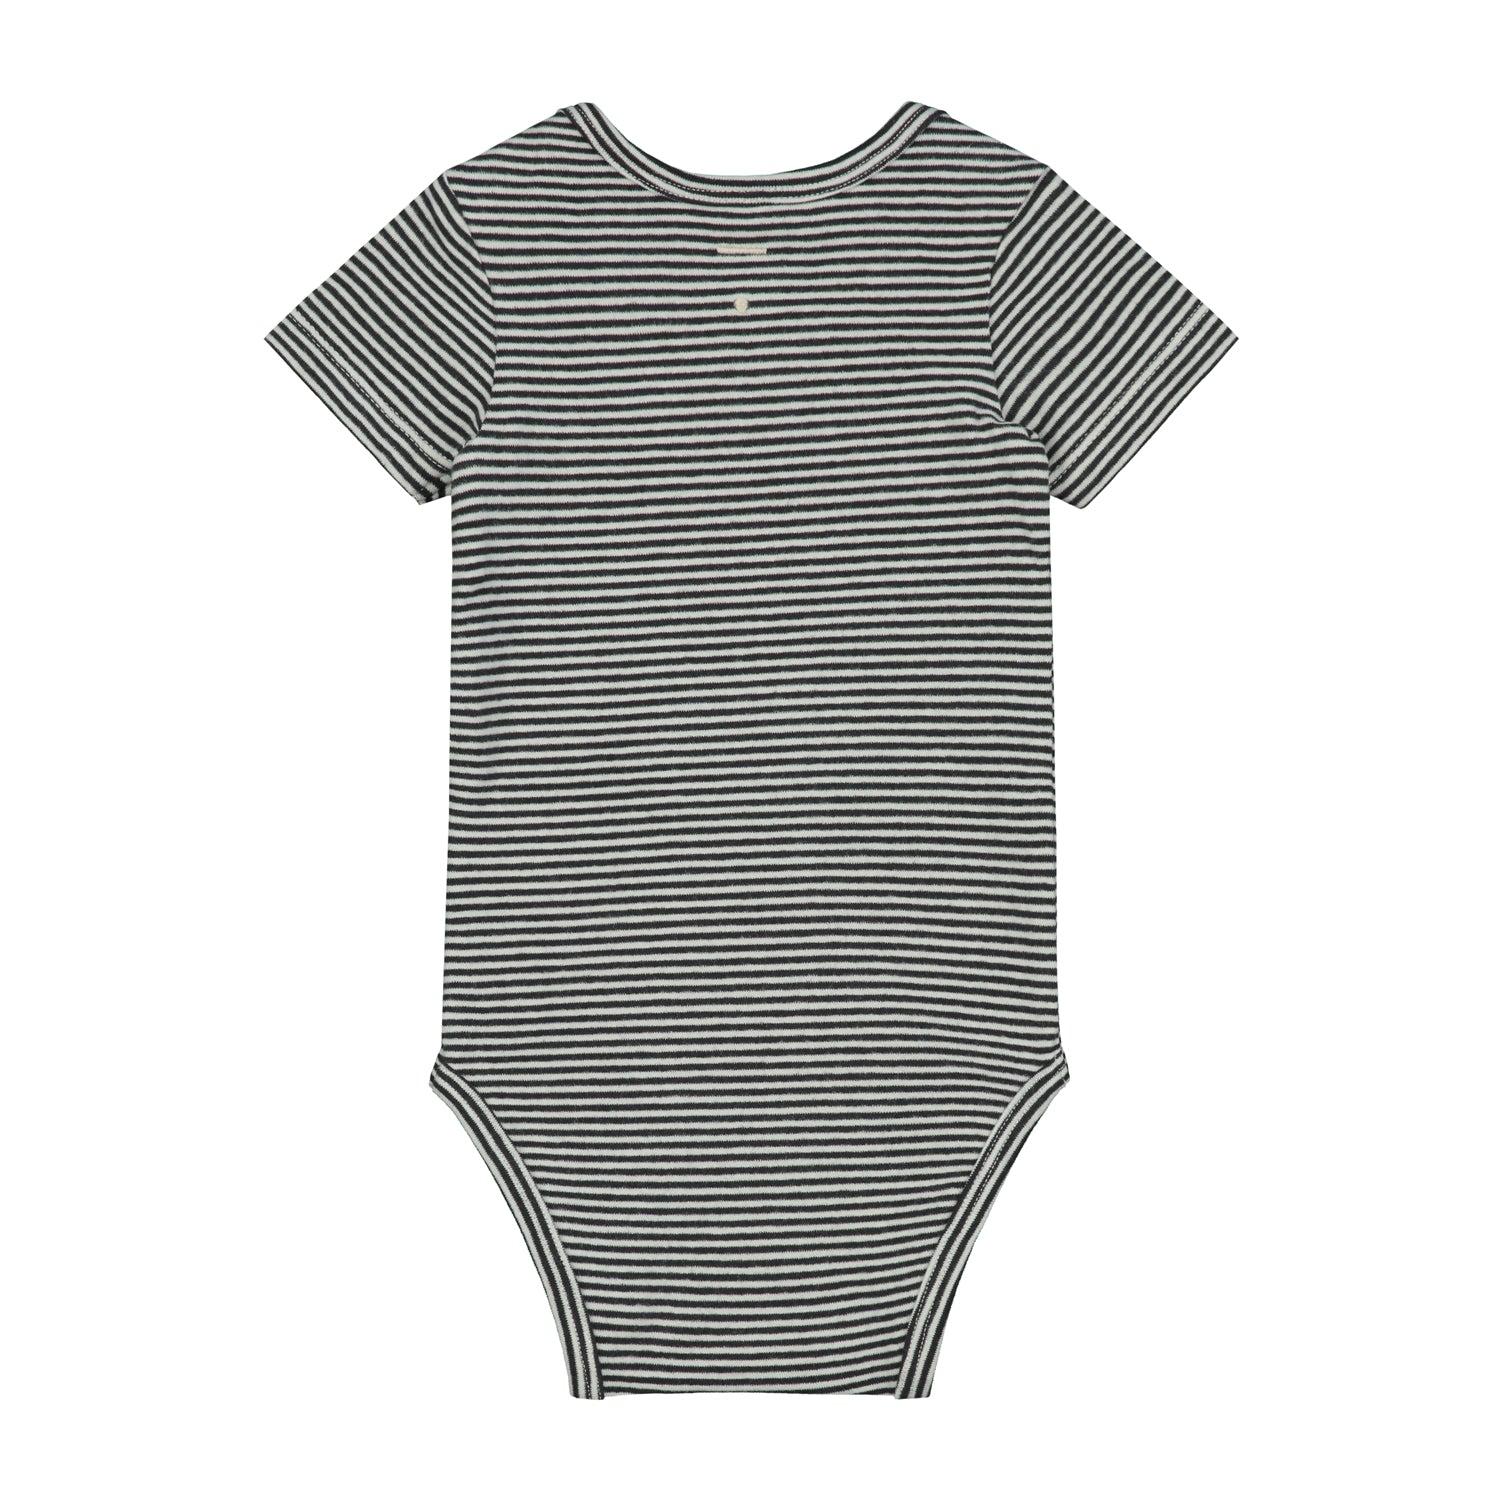 Боді Onesie nearly black/cream